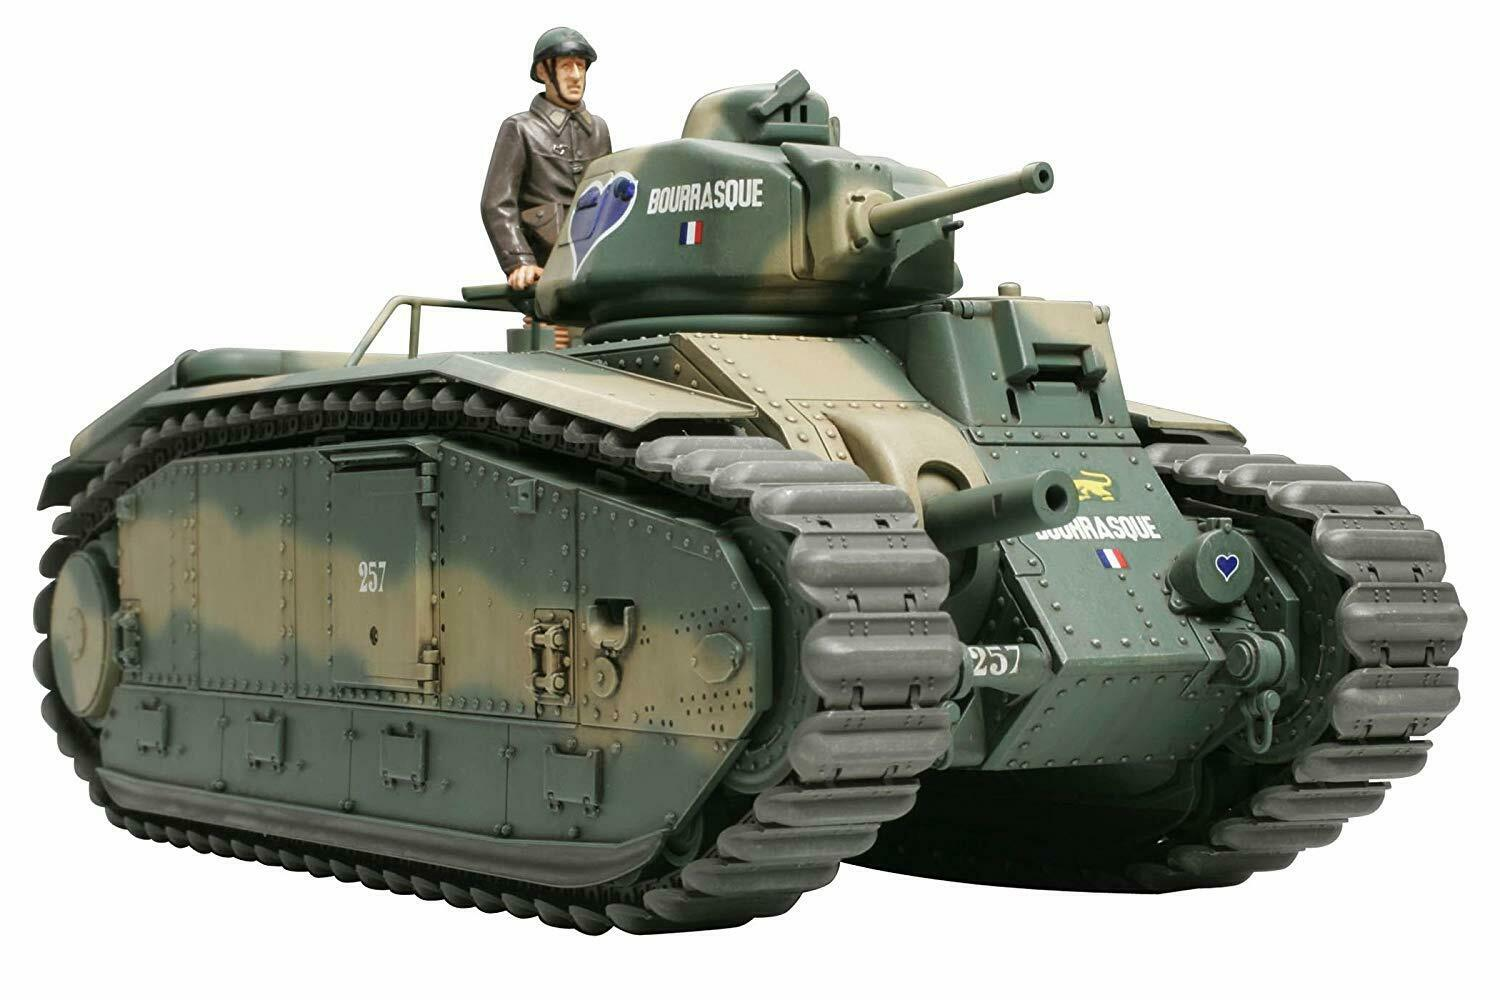 Tamiya 1 35 Military No.282 French Army Tank B1 bis Plastic Model 35282 Japan